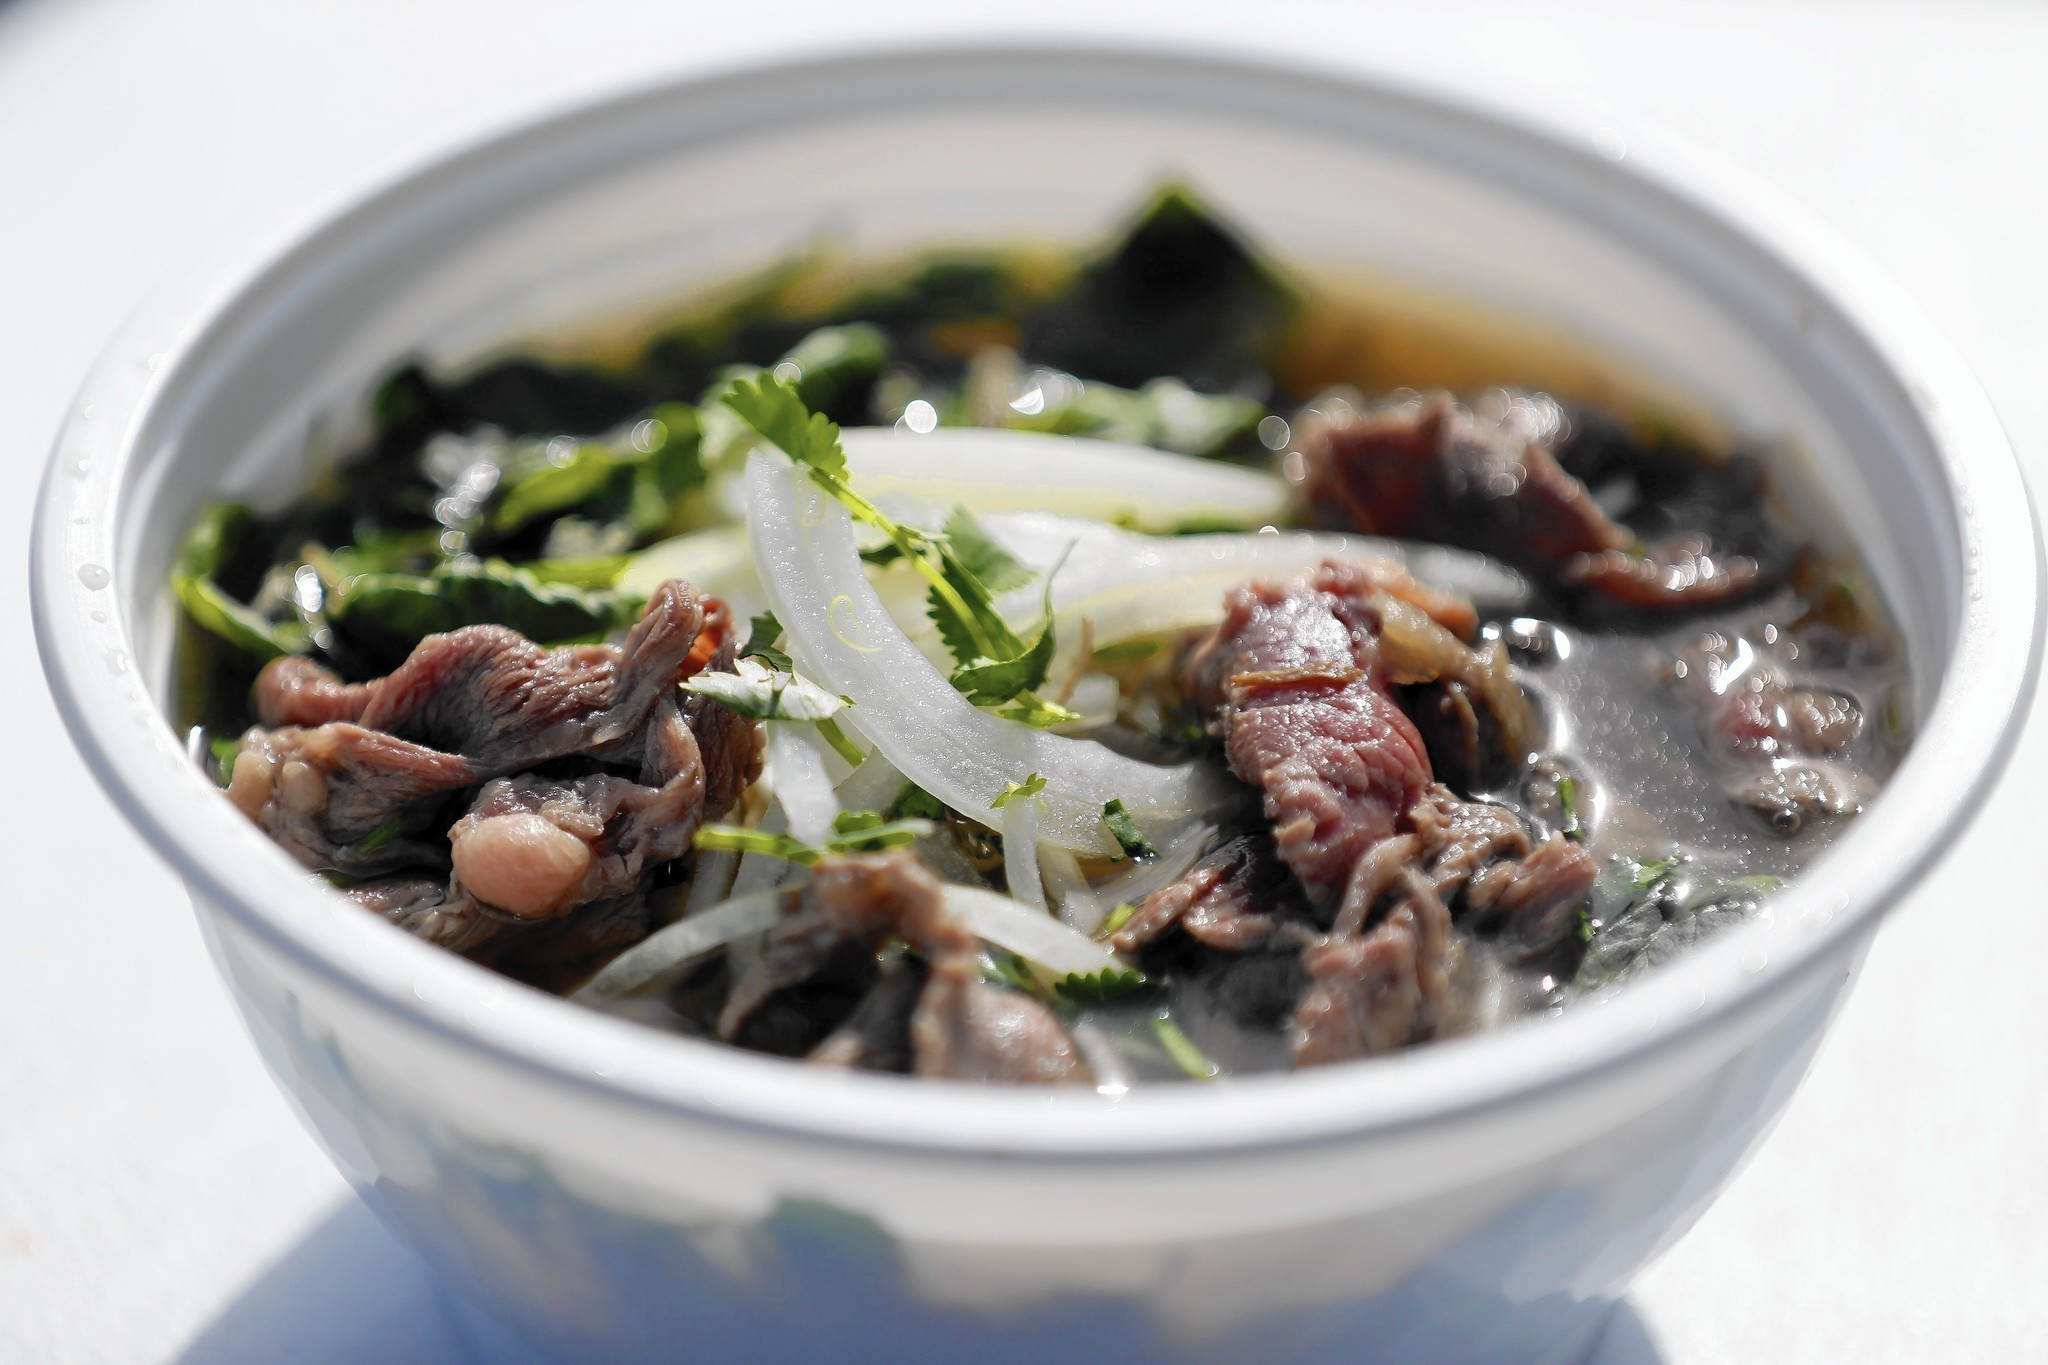 Pho, Spam musubi and more emerge from the window of this food truck